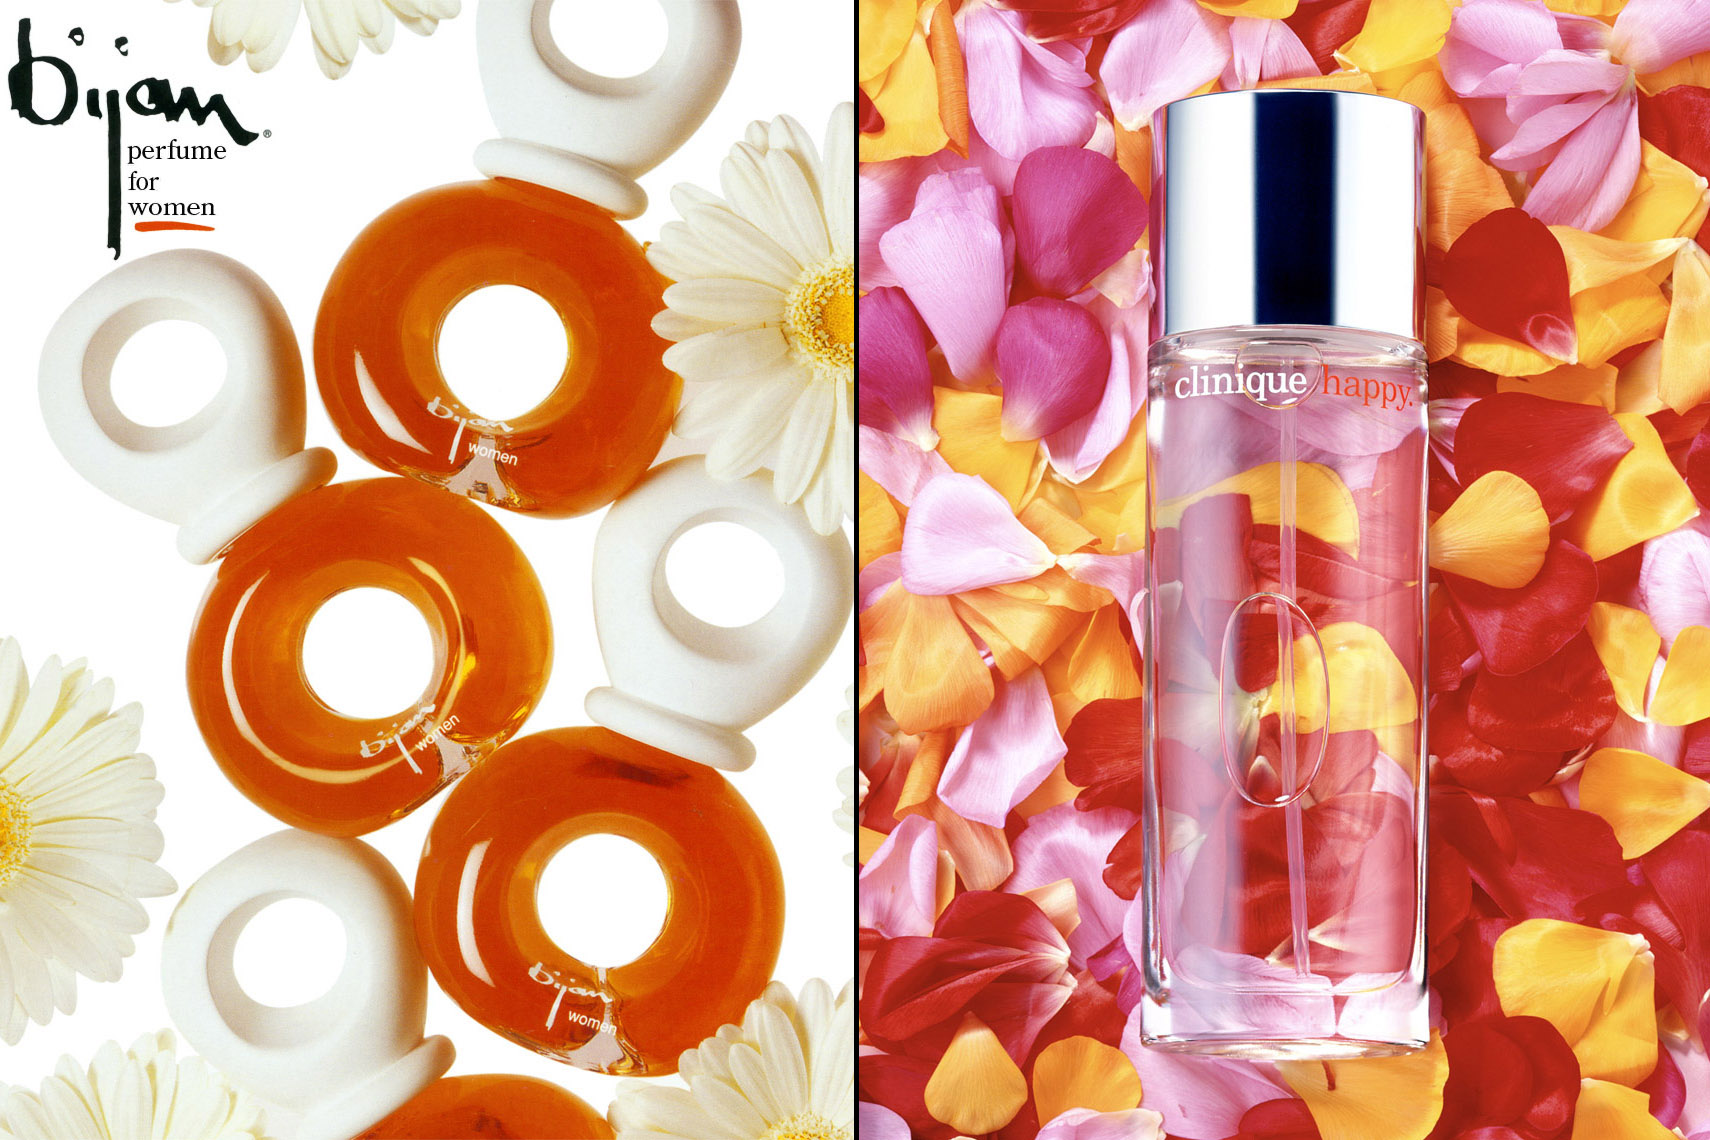 Cosmetics Still Life, Perfume by Bijan and Cinique with Flowers